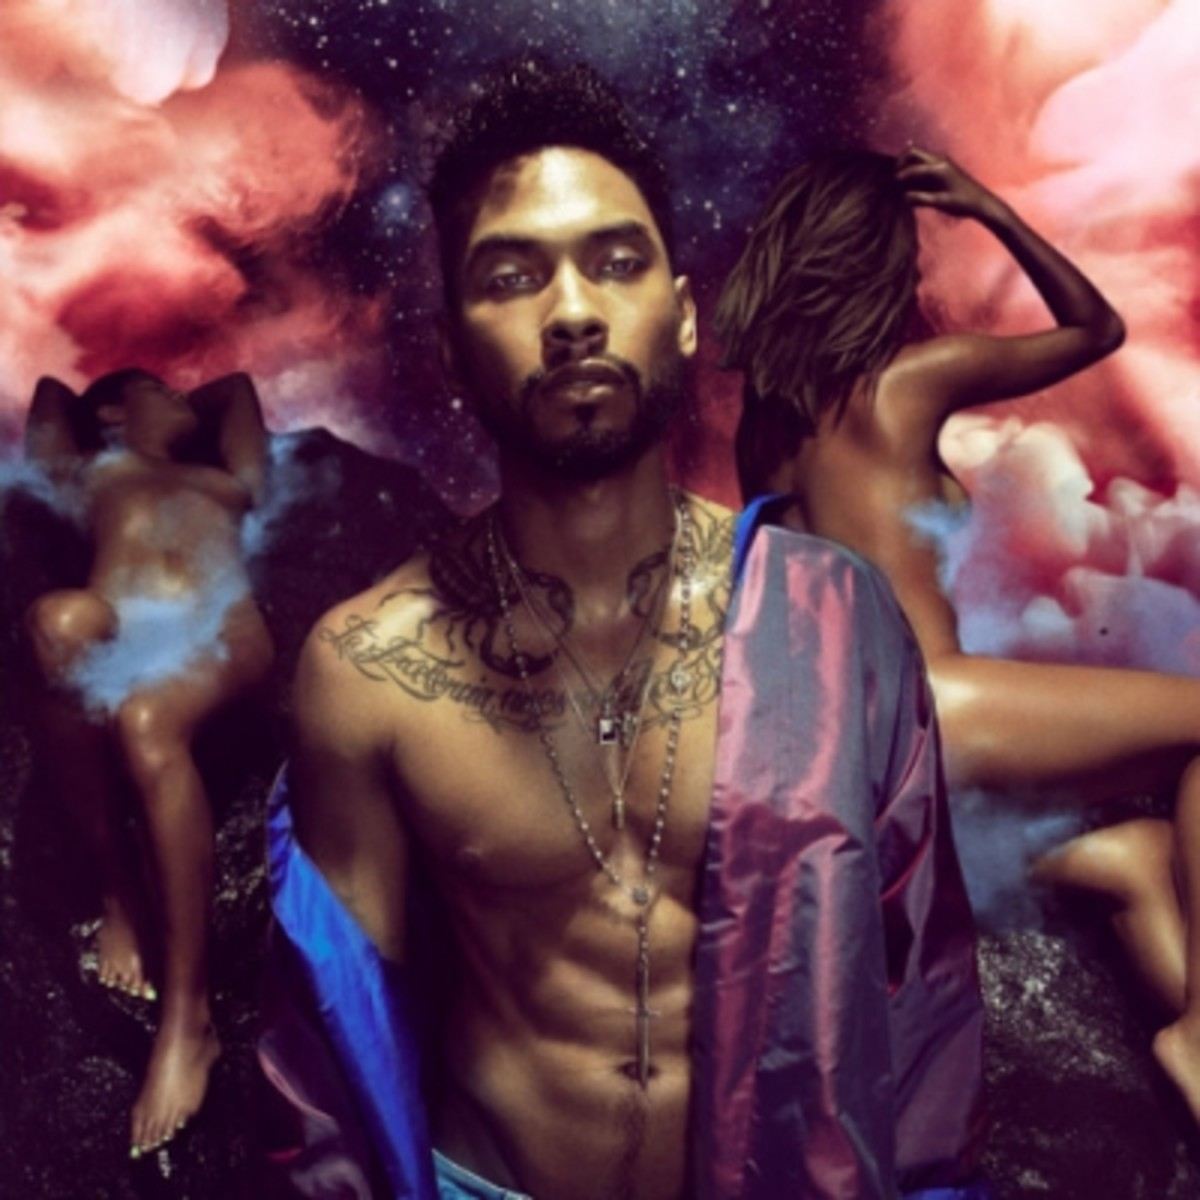 miguel-simple-things-remix.jpg